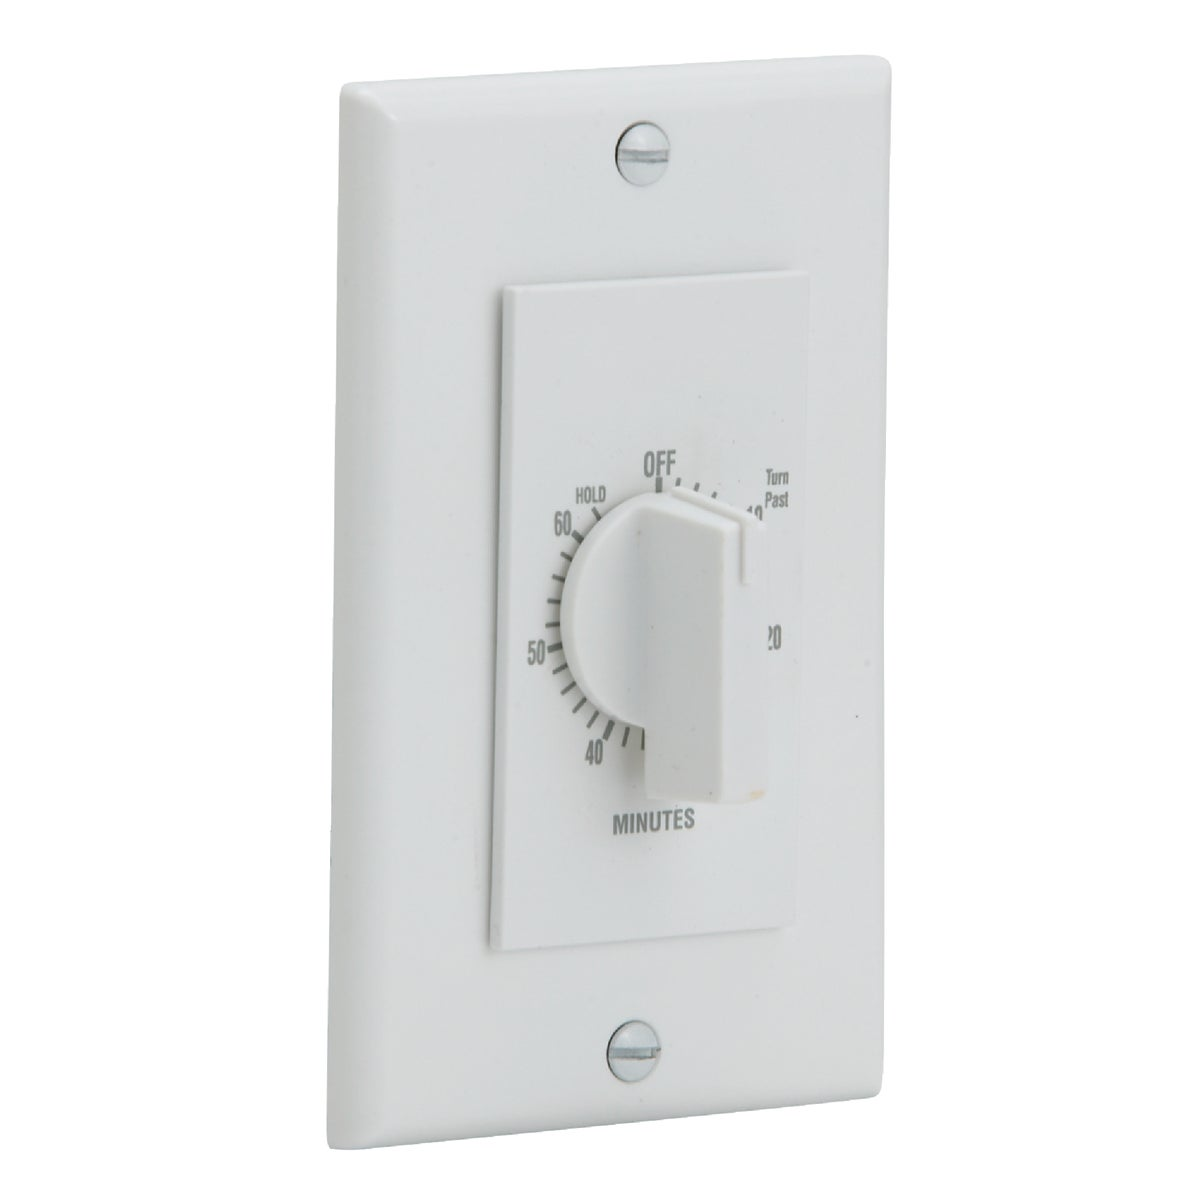 FAN CONTROL SWITCH